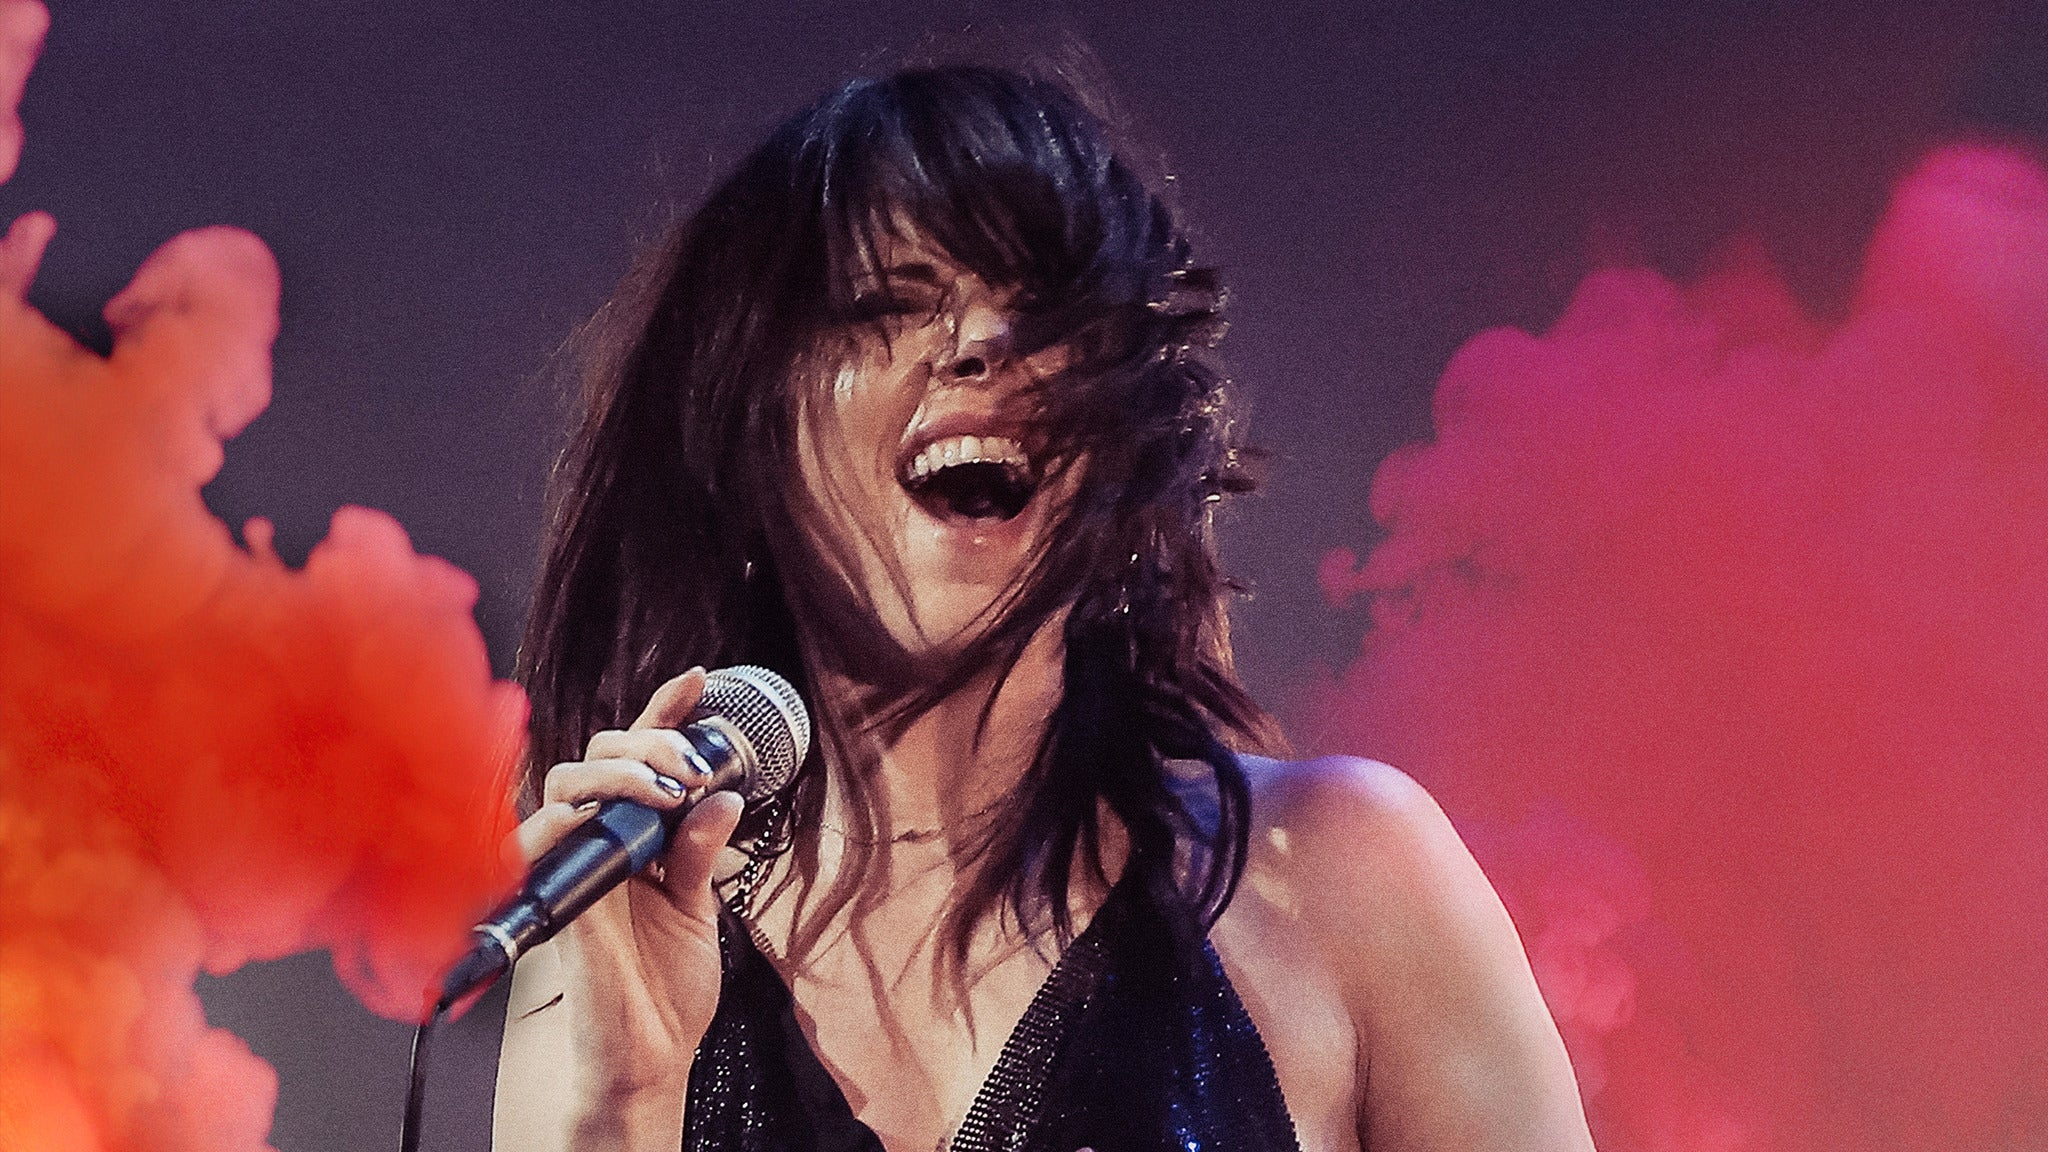 Image used with permission from Ticketmaster | Imelda May tickets